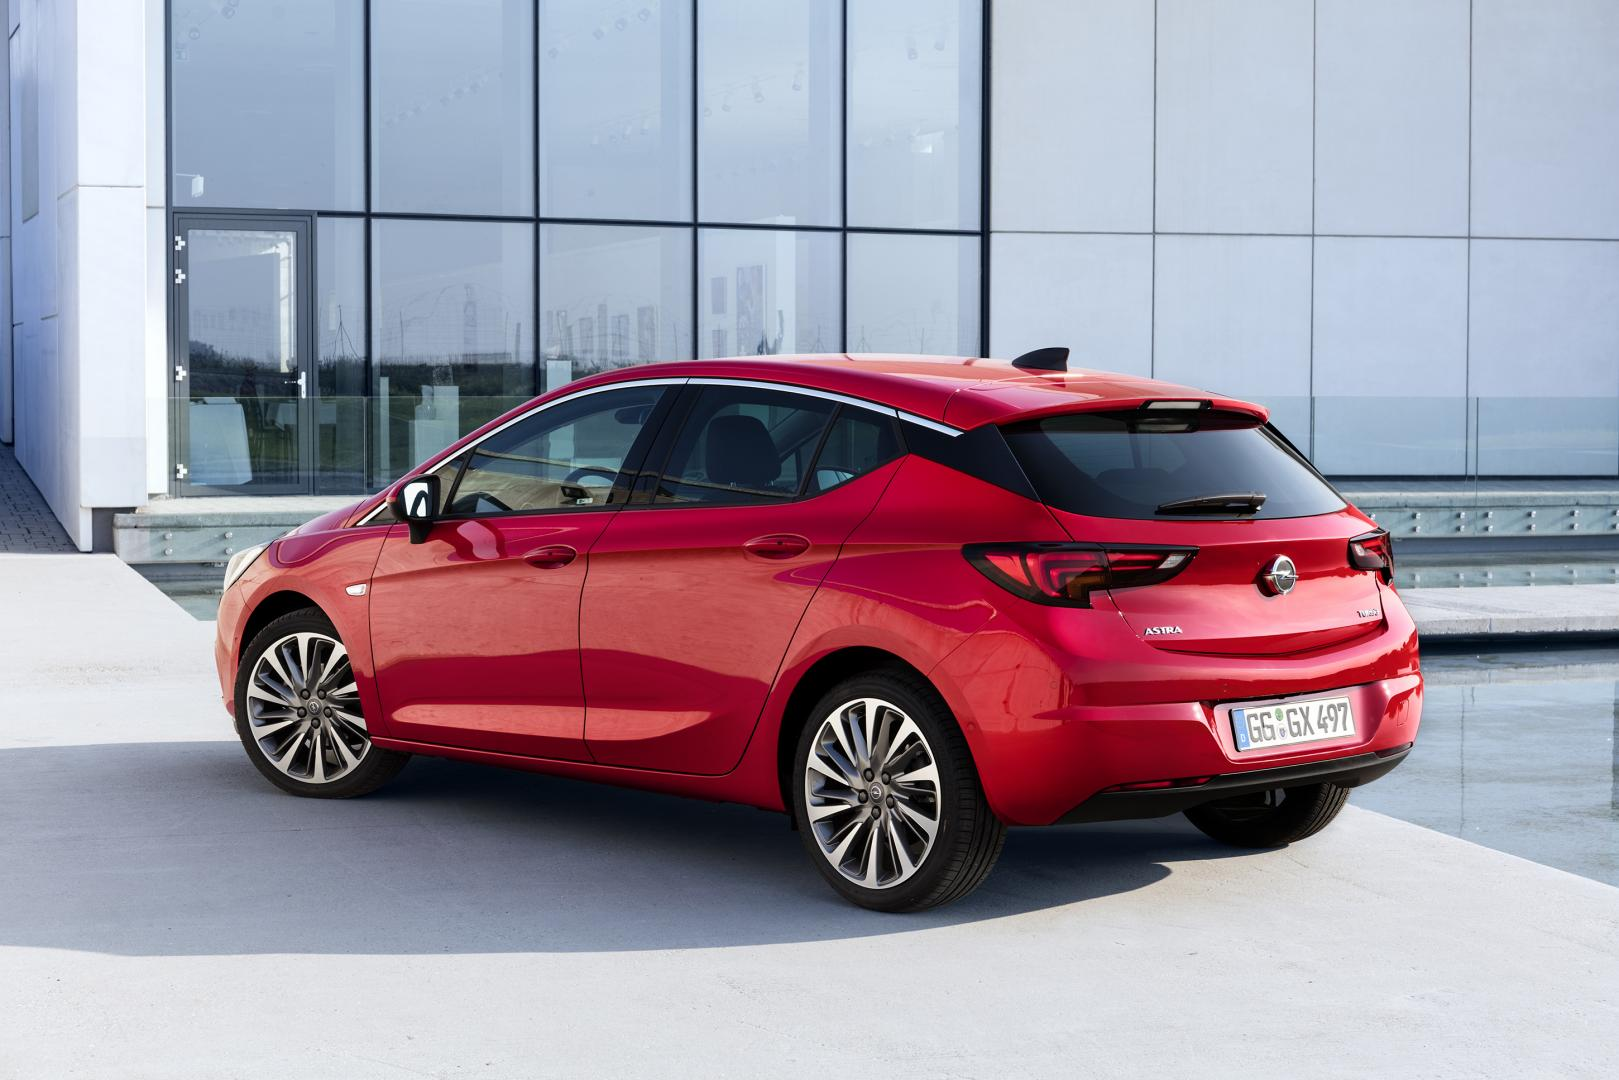 opel astra 1 4 turbo autotest gefocust modern en levendig. Black Bedroom Furniture Sets. Home Design Ideas